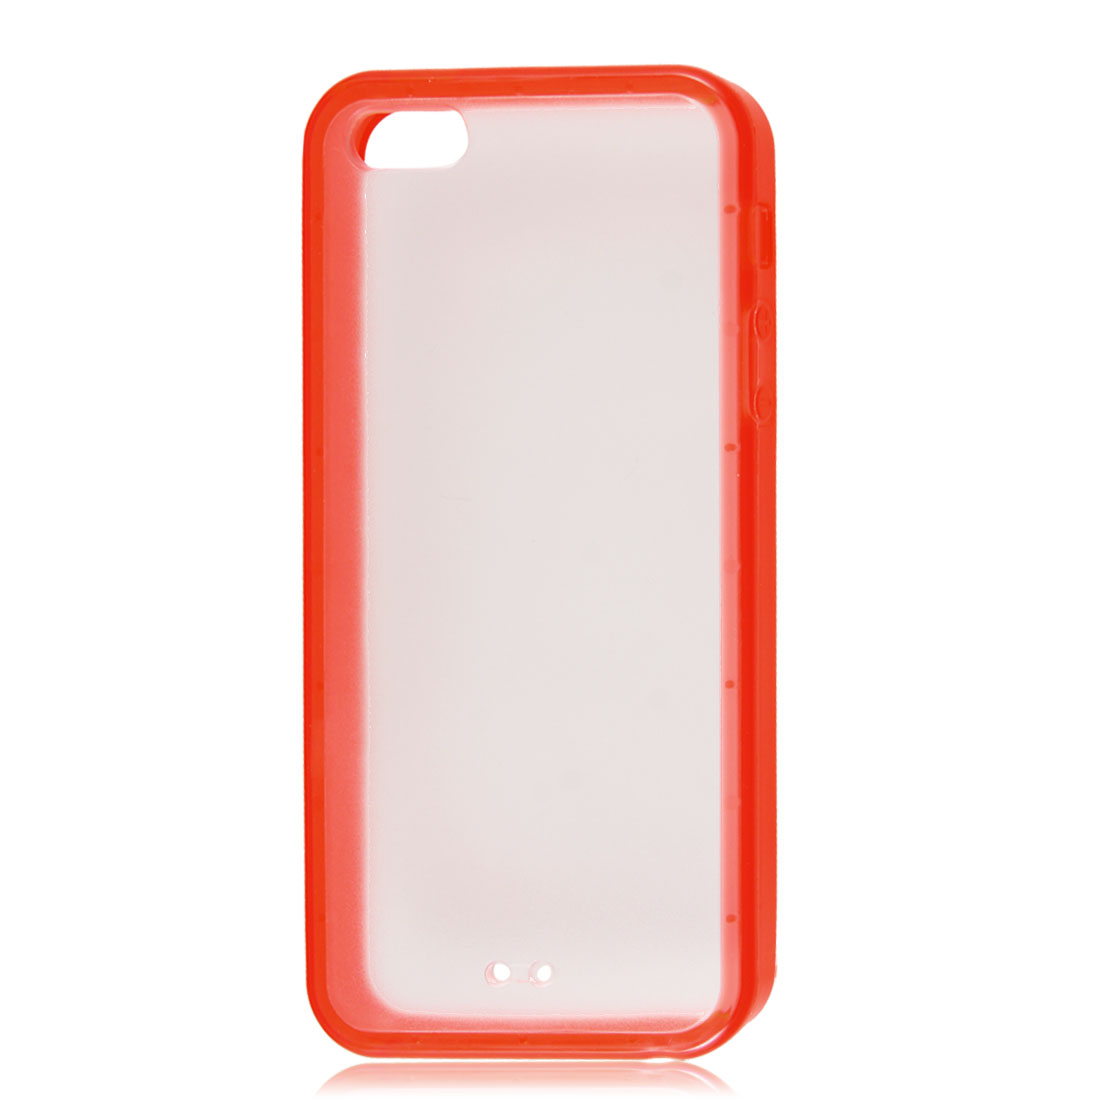 Red Soft Trim Clear Hard Back Plastic Protective Case Cover for iPhone 5 5G